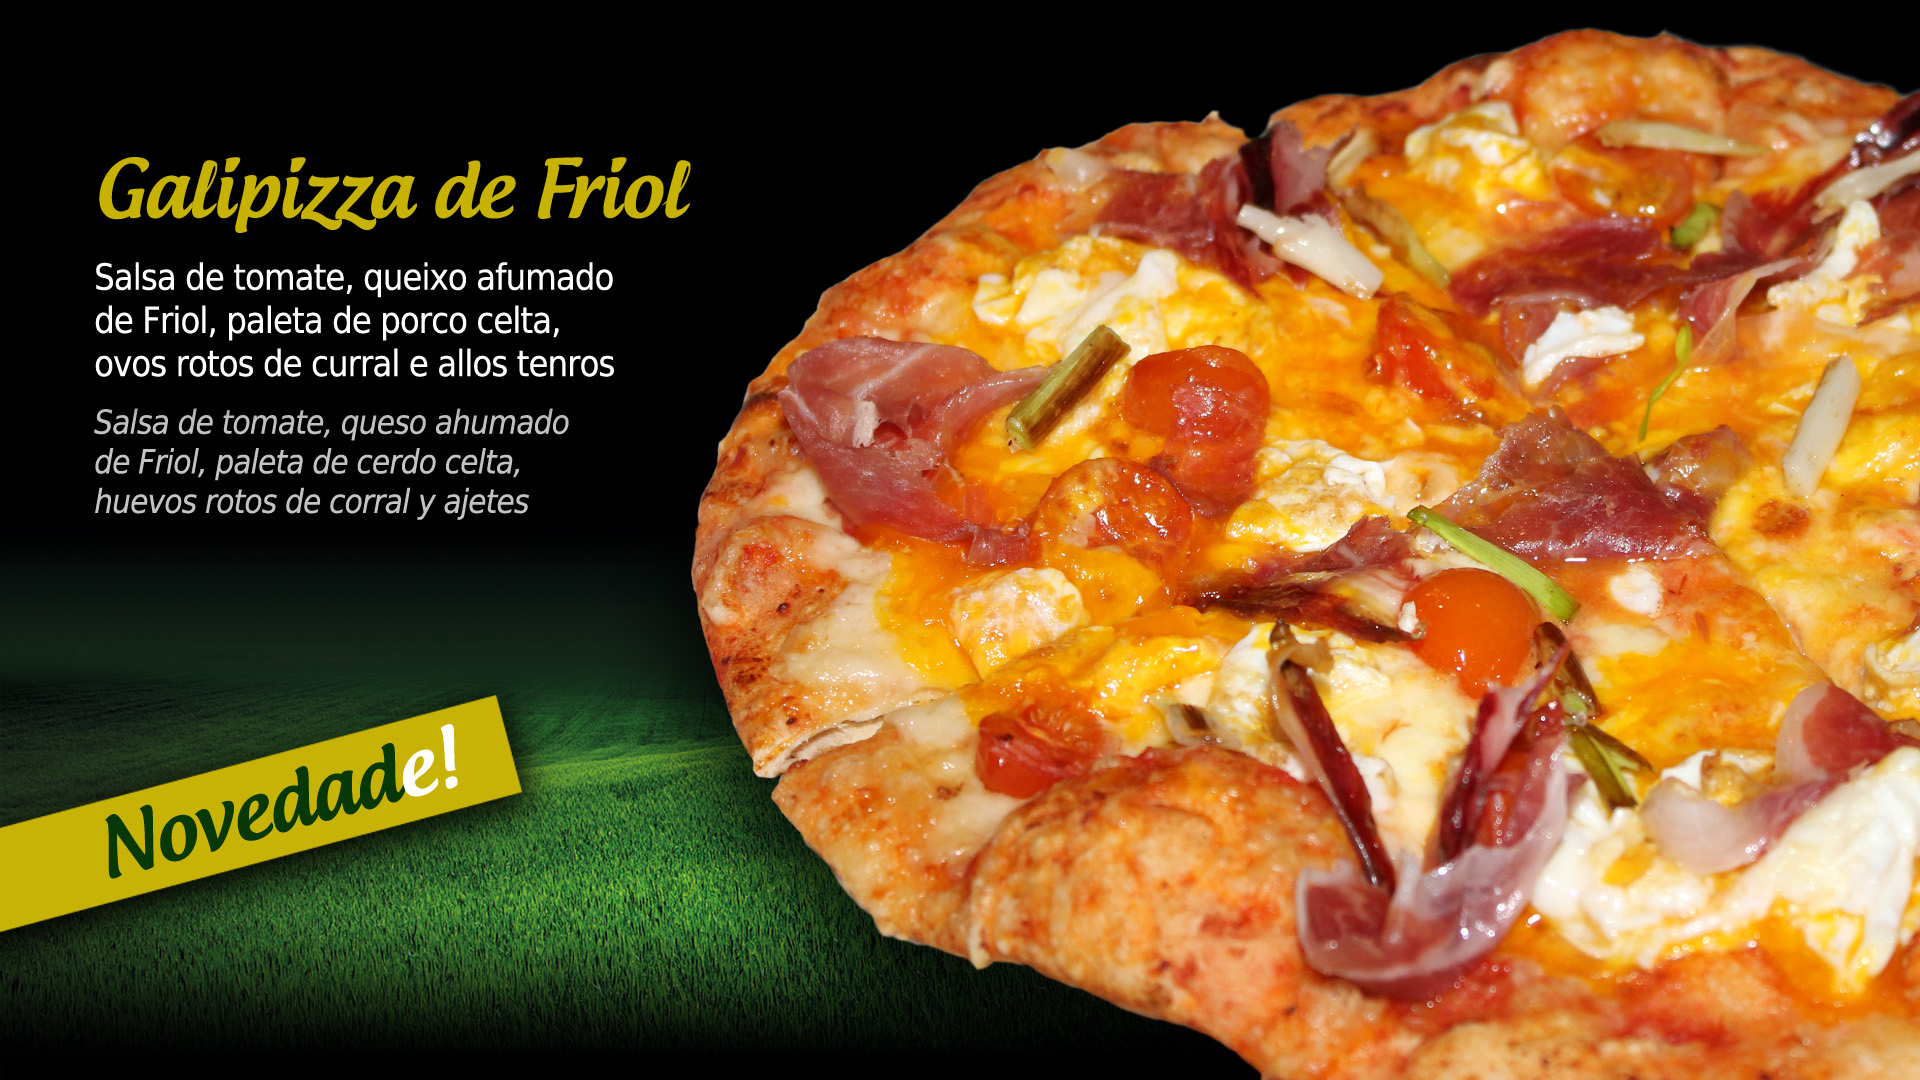 SLIDER_1920x1080_10galipizzaFriol1